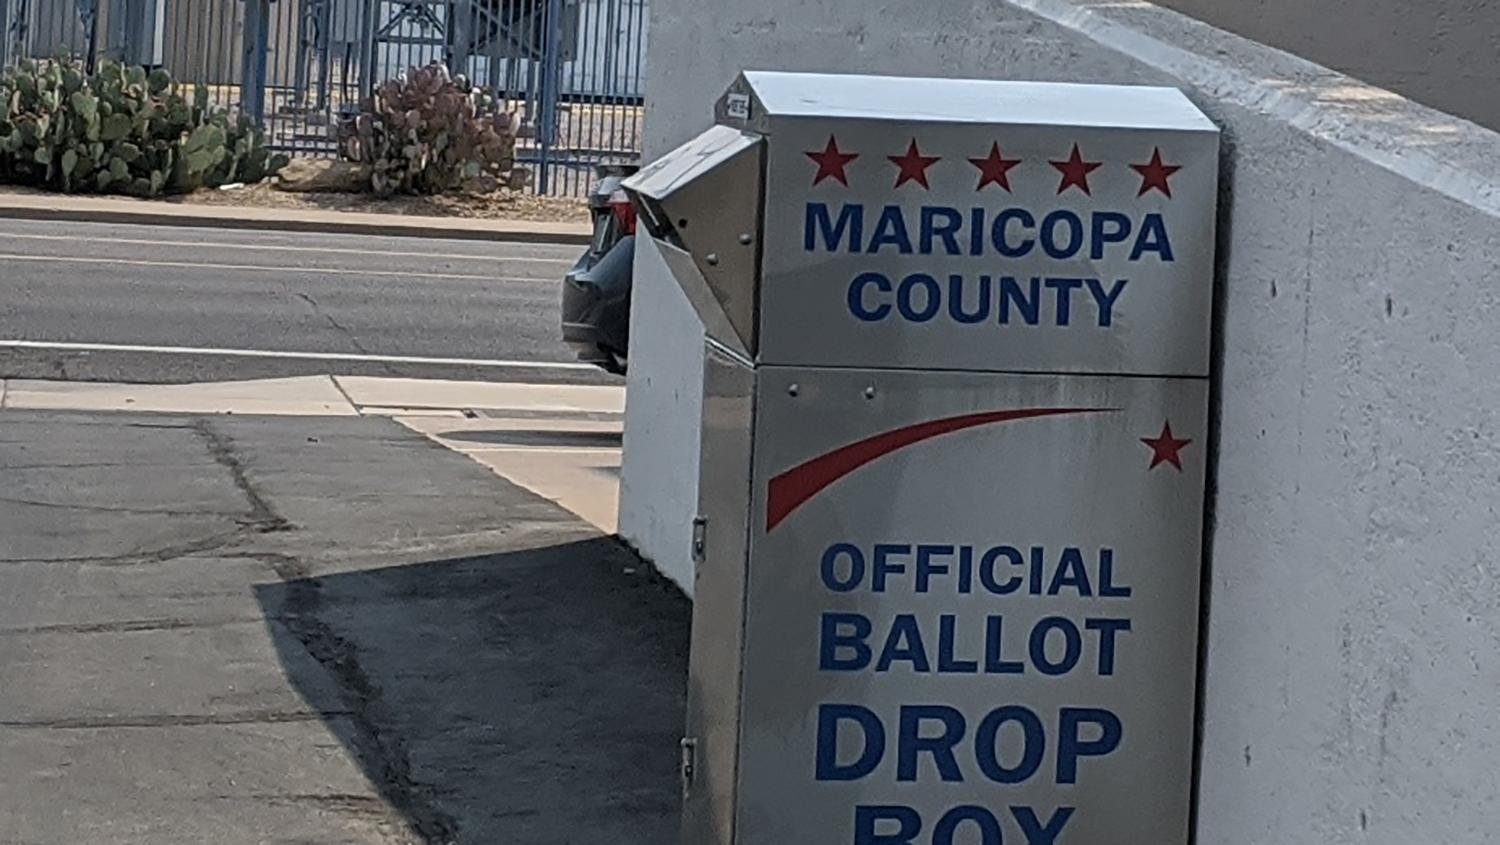 An official ballot drop box at Maricopa County Elections Department